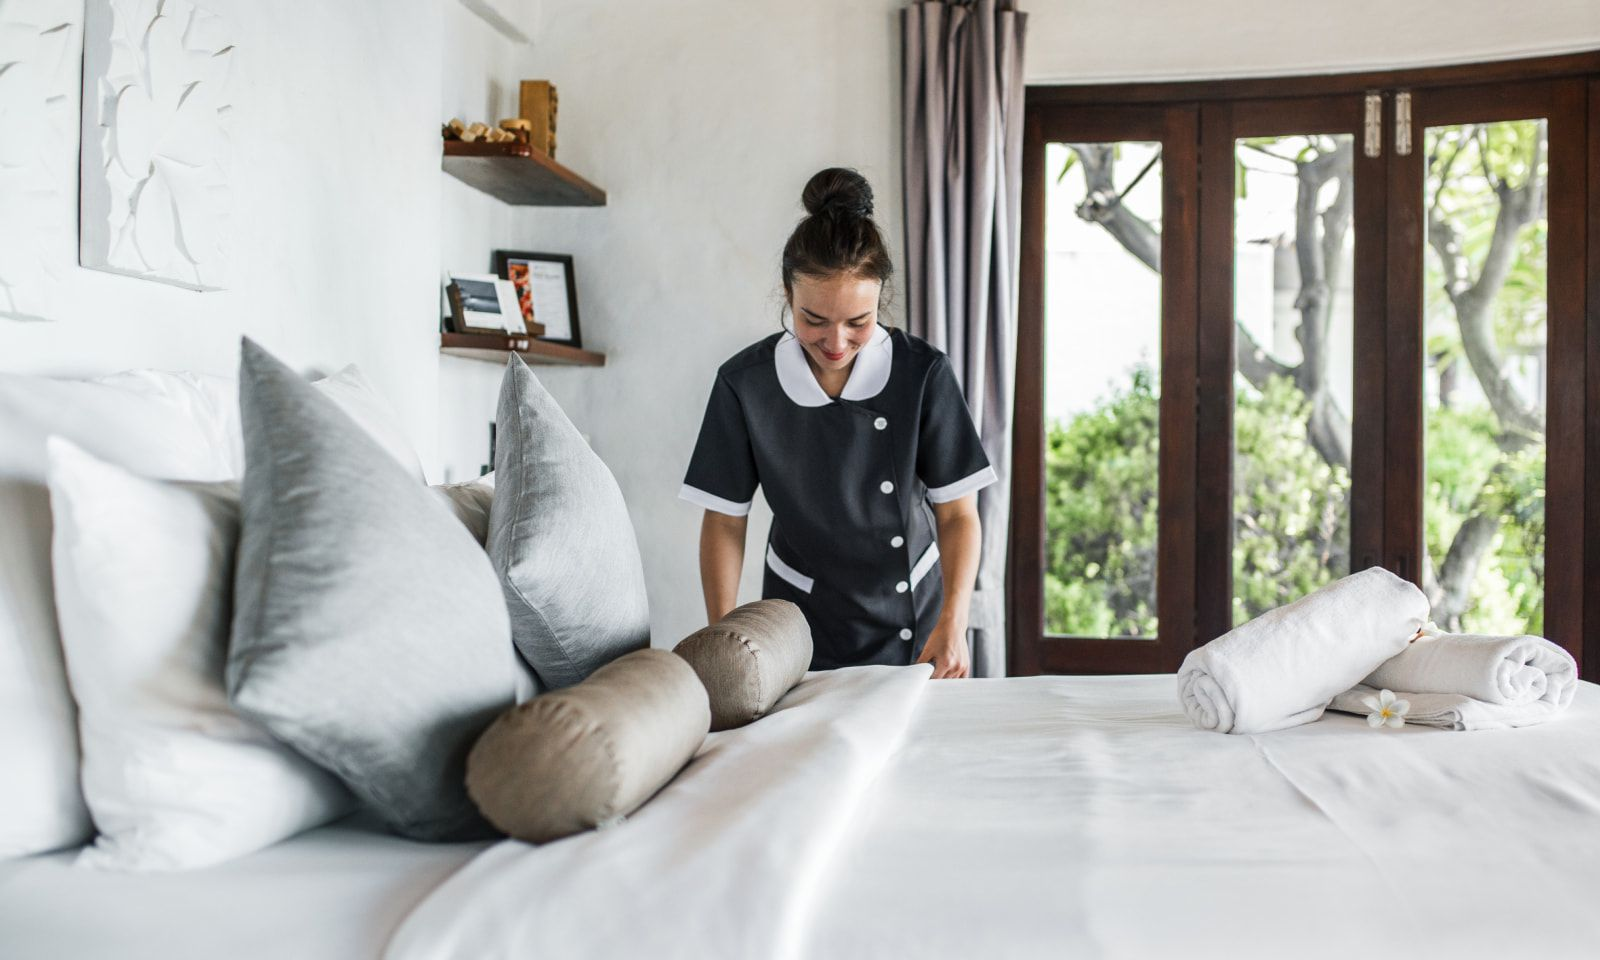 Liability for Employment Claims? - Hotel Cleaning Services